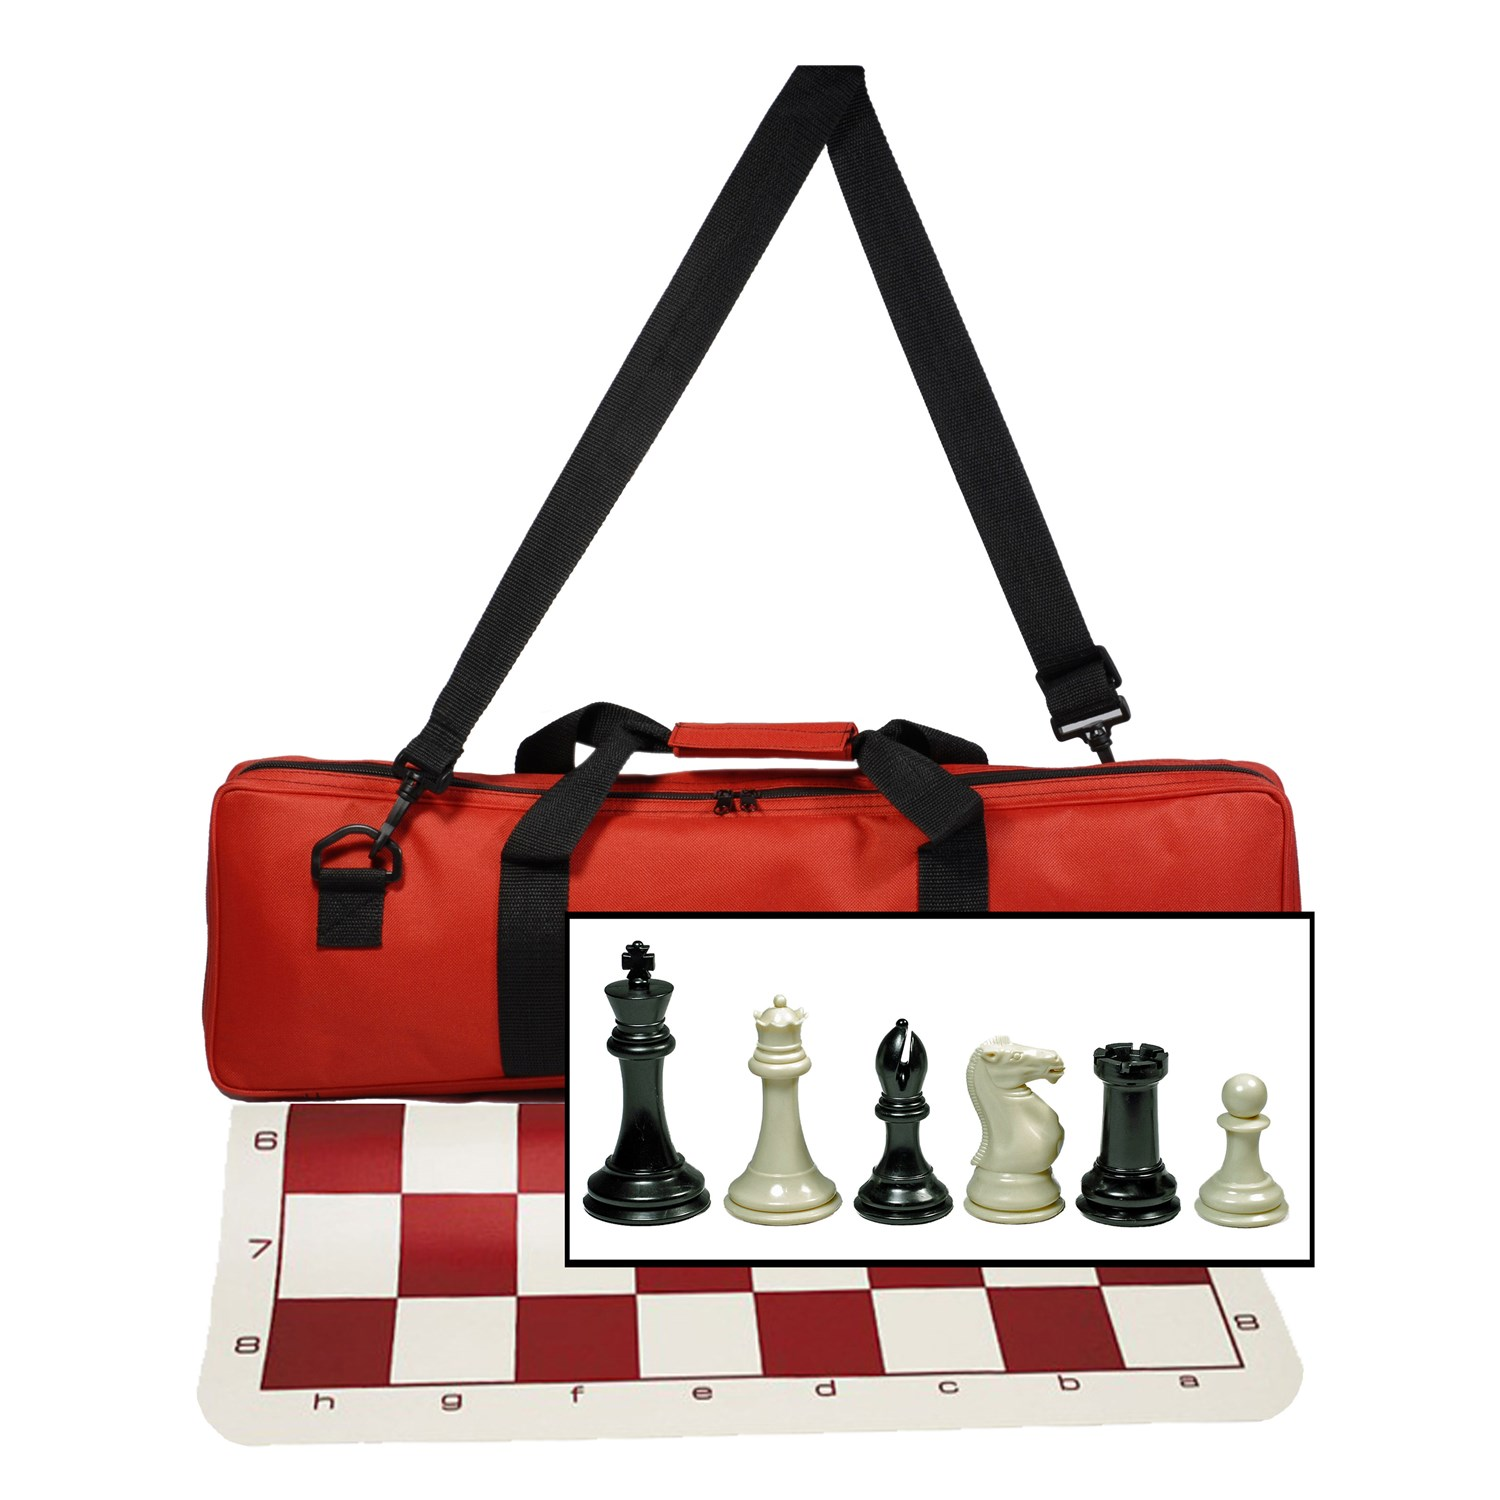 We Ultimate Tournament Chess Set With New Red Silicone Mat Canvas Bag Super Triple Weighted Chessmen 4 King